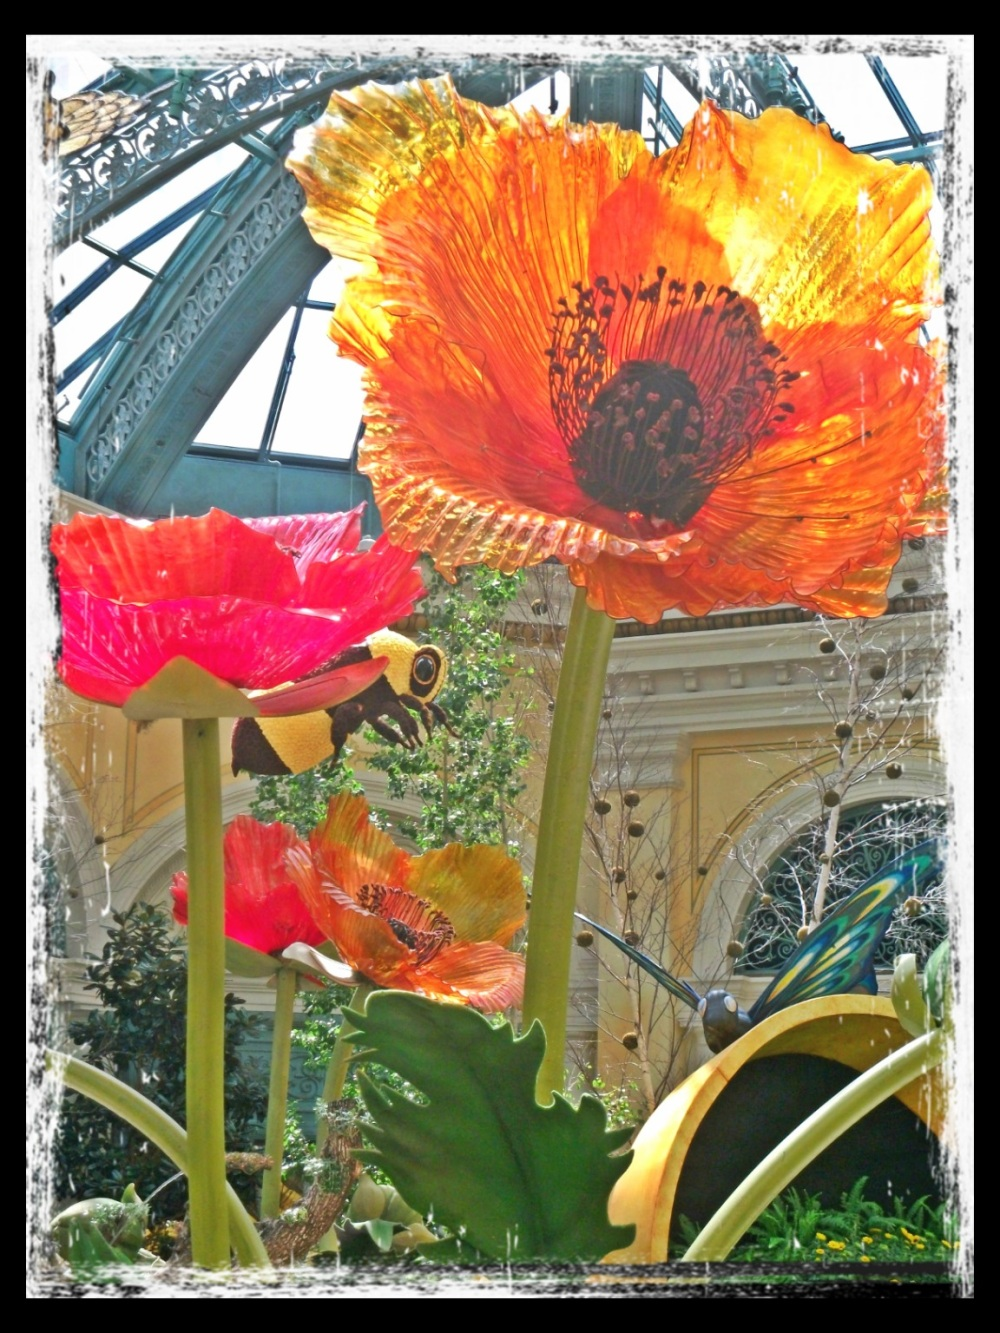 Giant flower at Bellagio